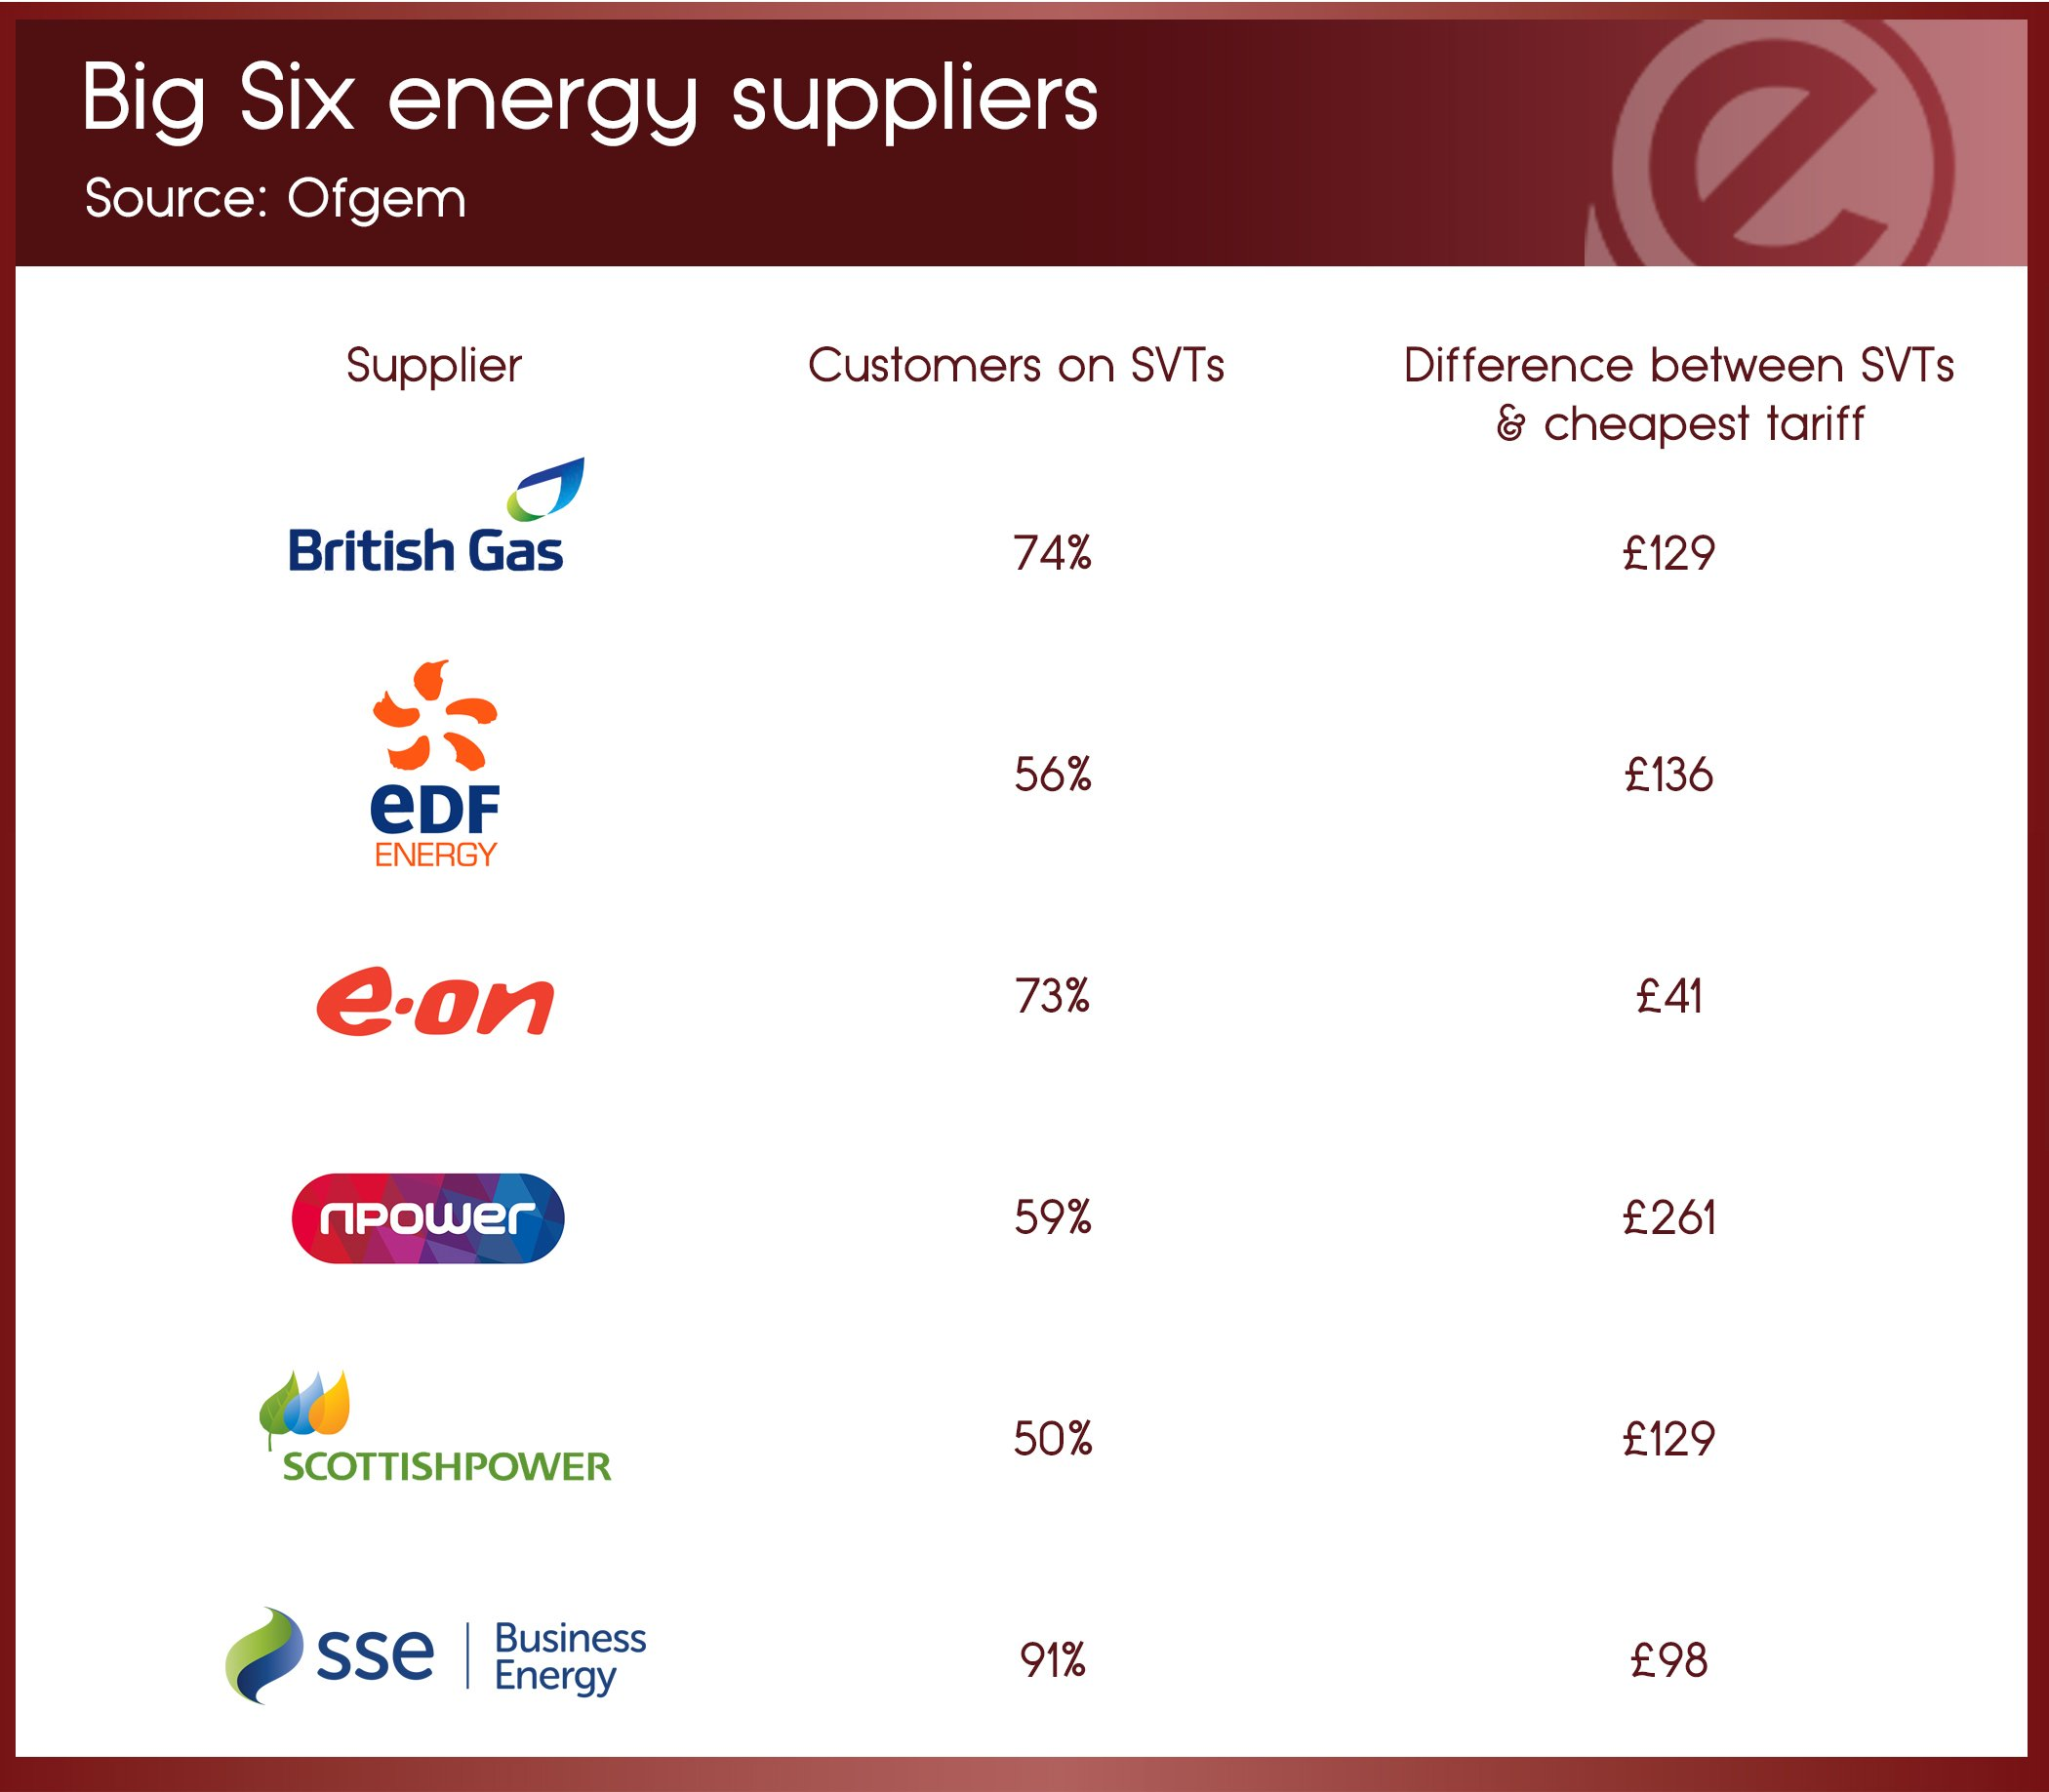 14th-dec-bigsix-energy-suppliers